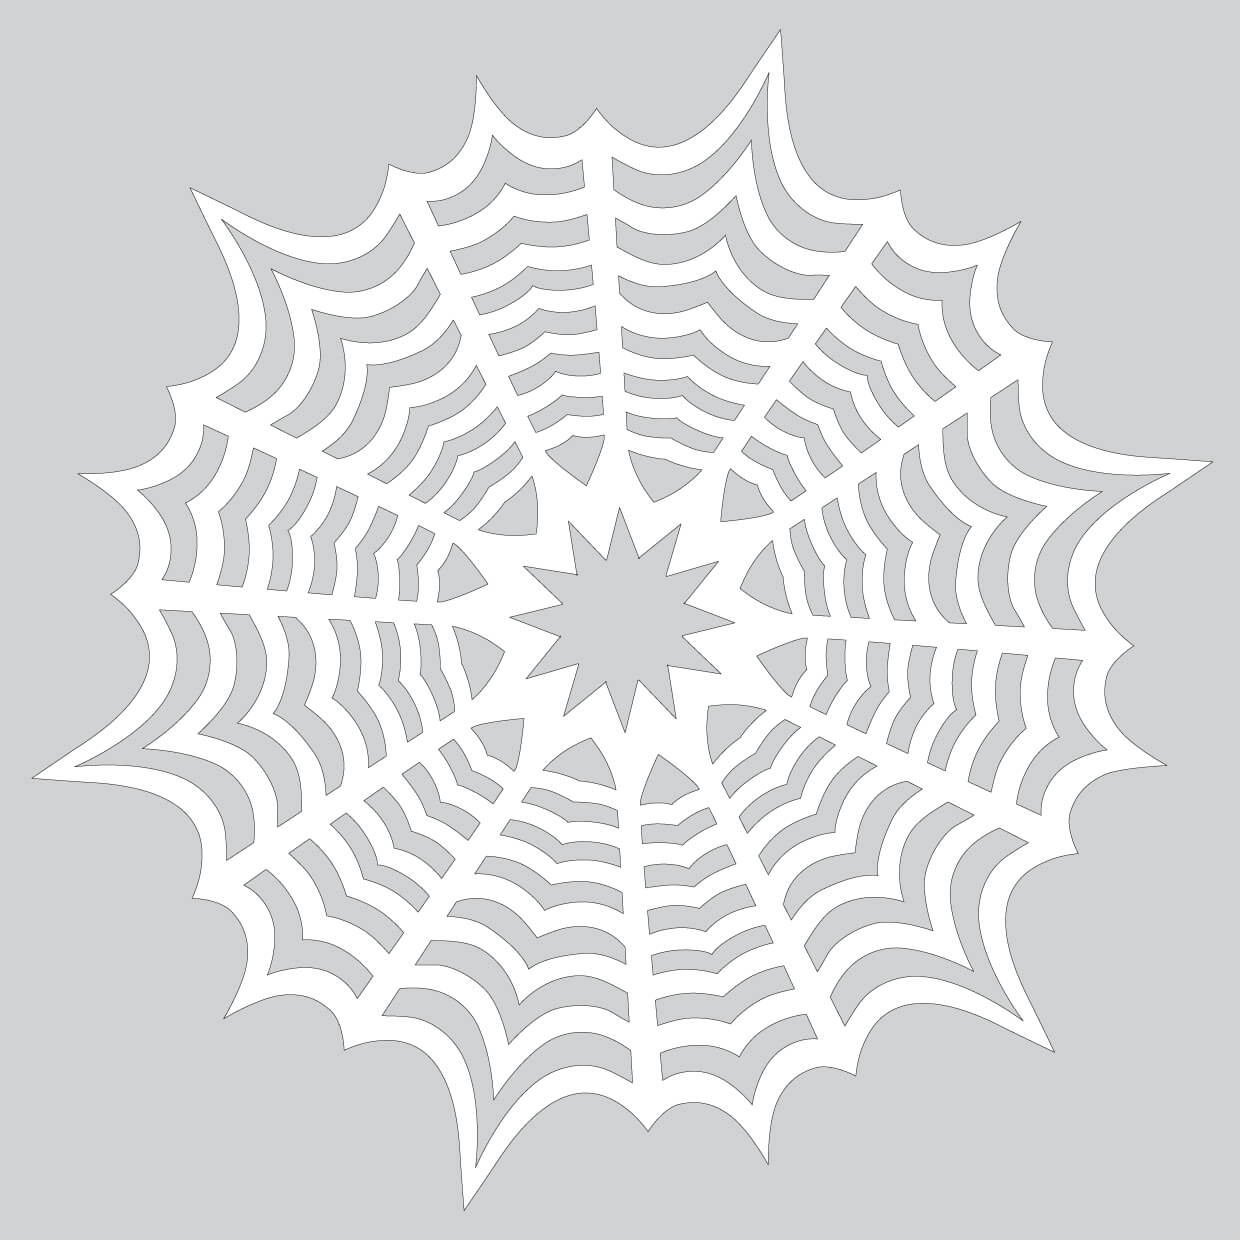 How To Make Paper Snowflake With Spiderweb Pattern To Cut